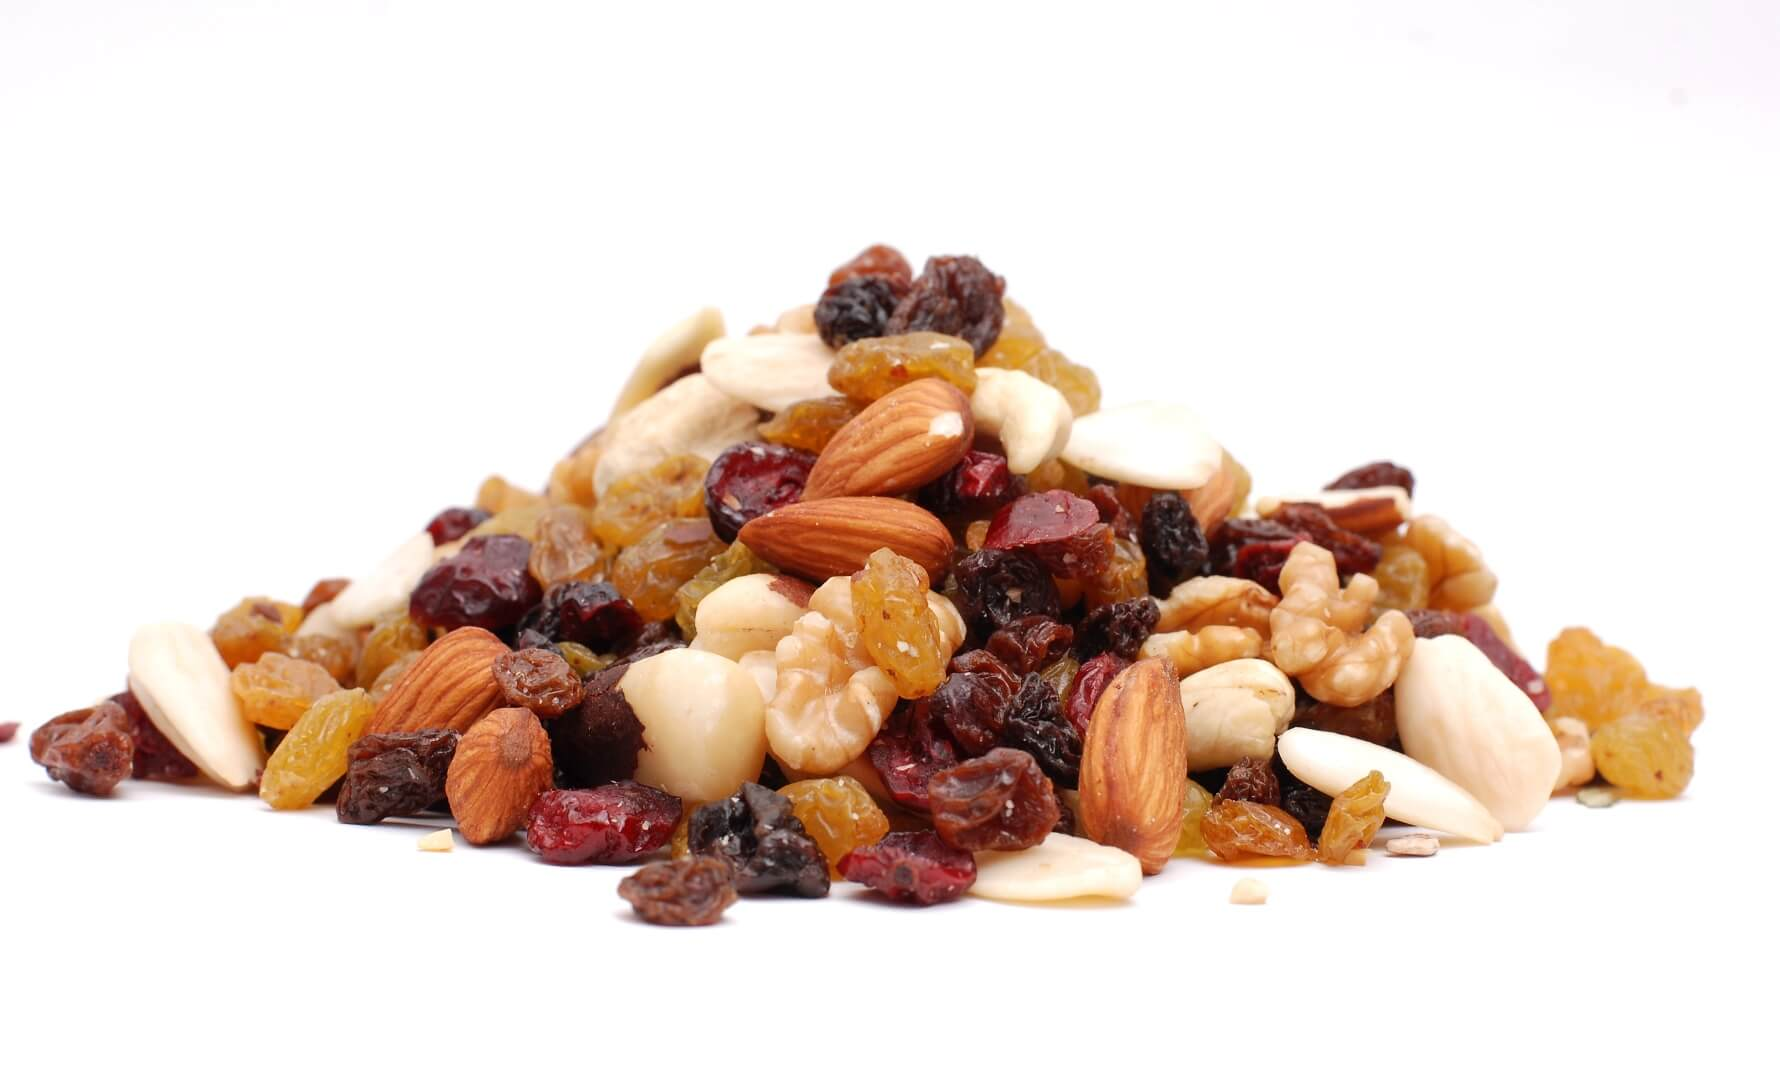 Mix of nuts and dried fruit in a pile